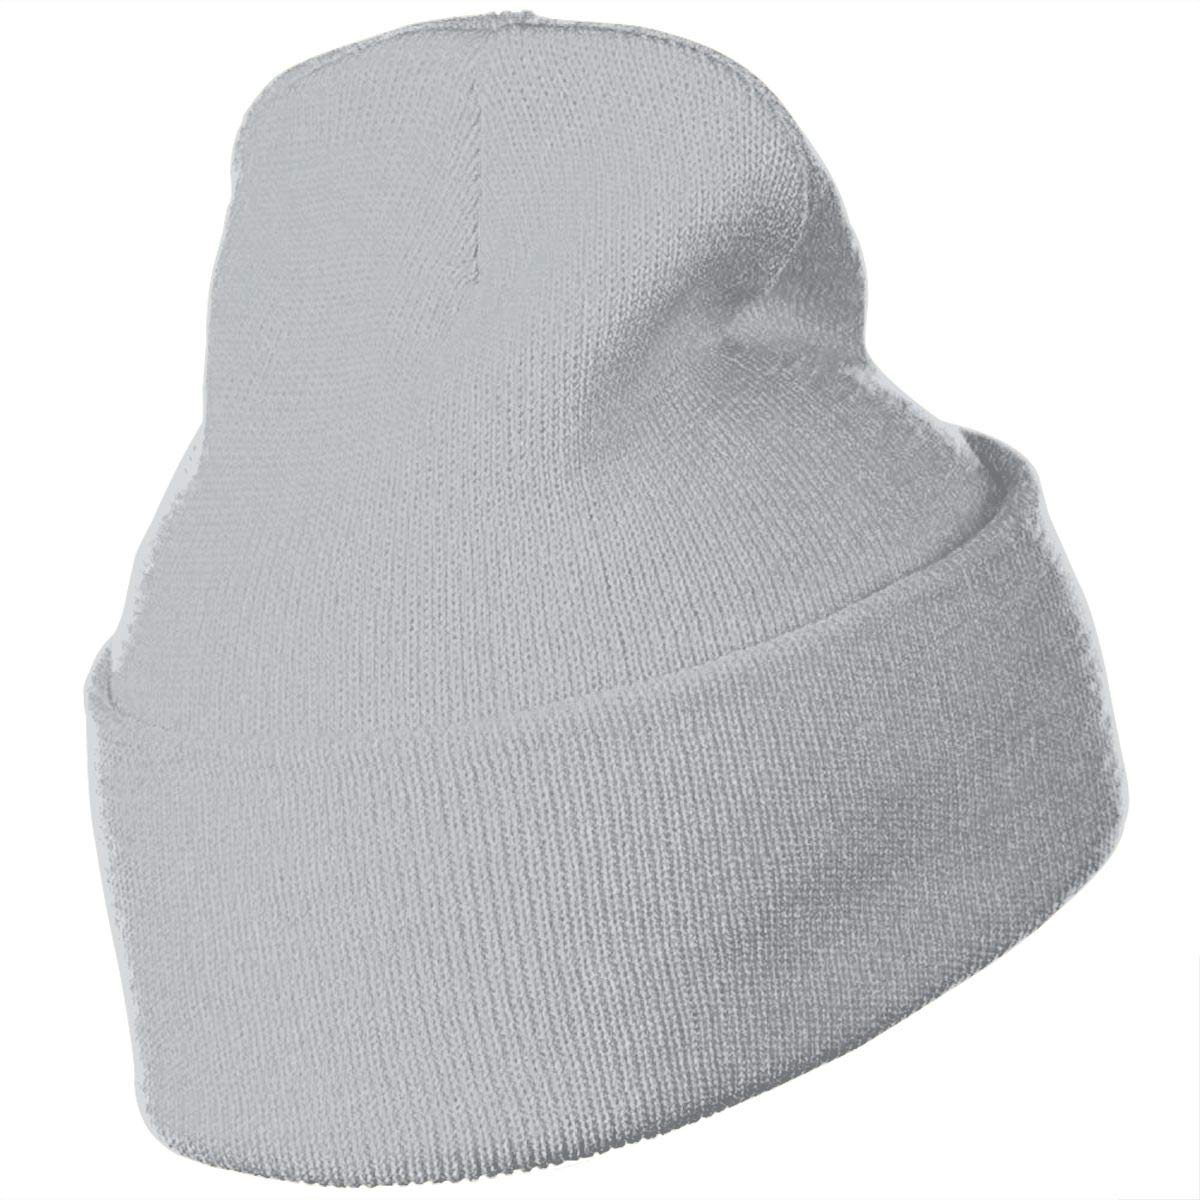 ONHIM Guitar Unisex Winter Warm Kintted Beanie Hat Slouchy Chunky Cuff Cap